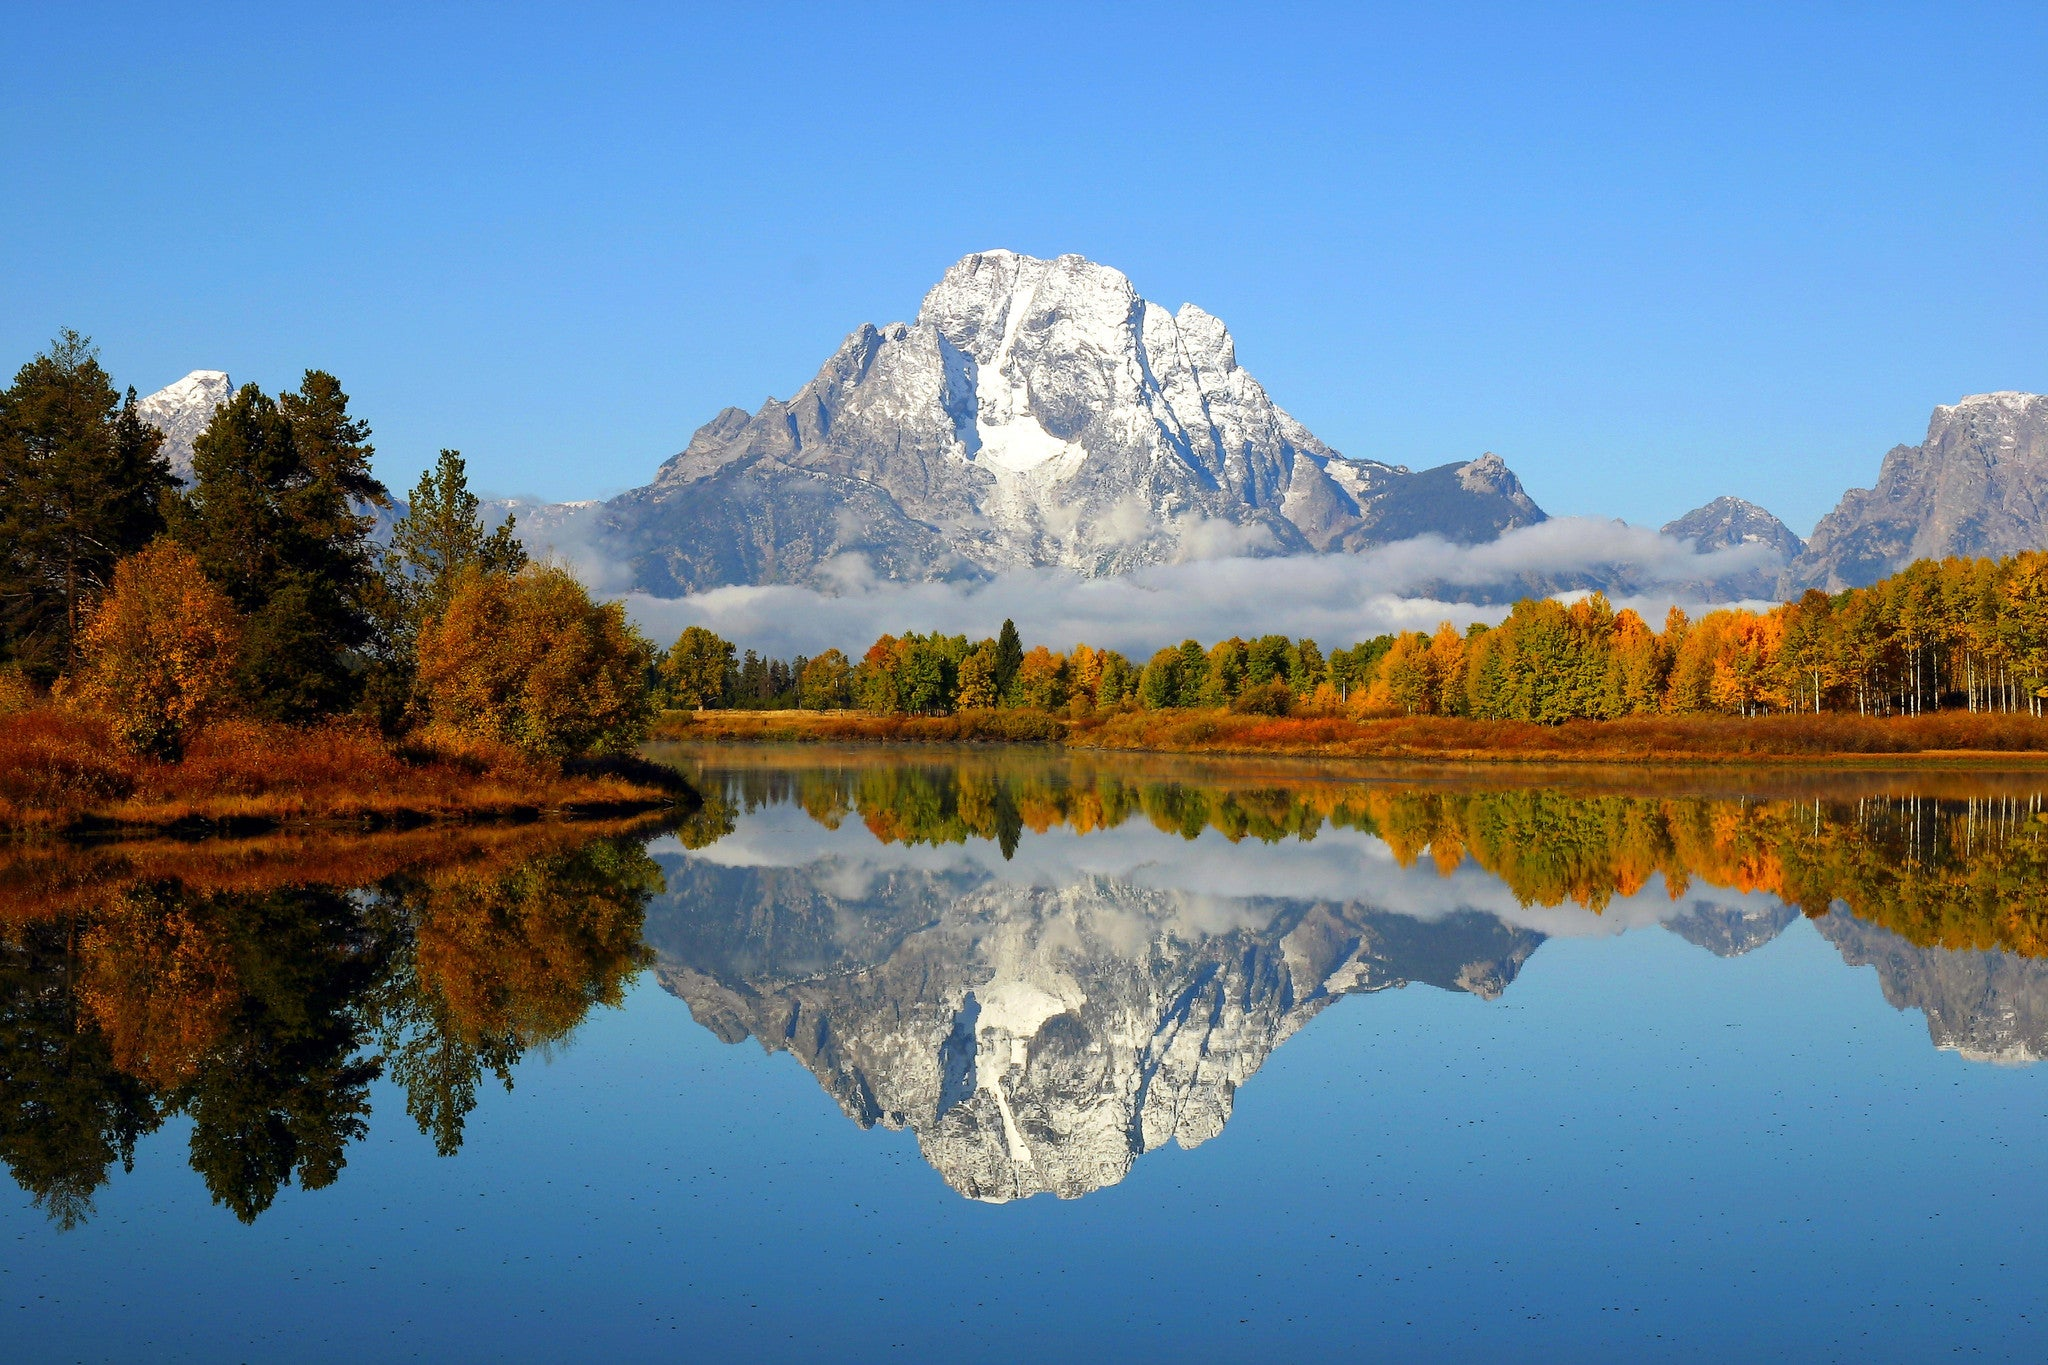 Fall in Grand Teton National Park